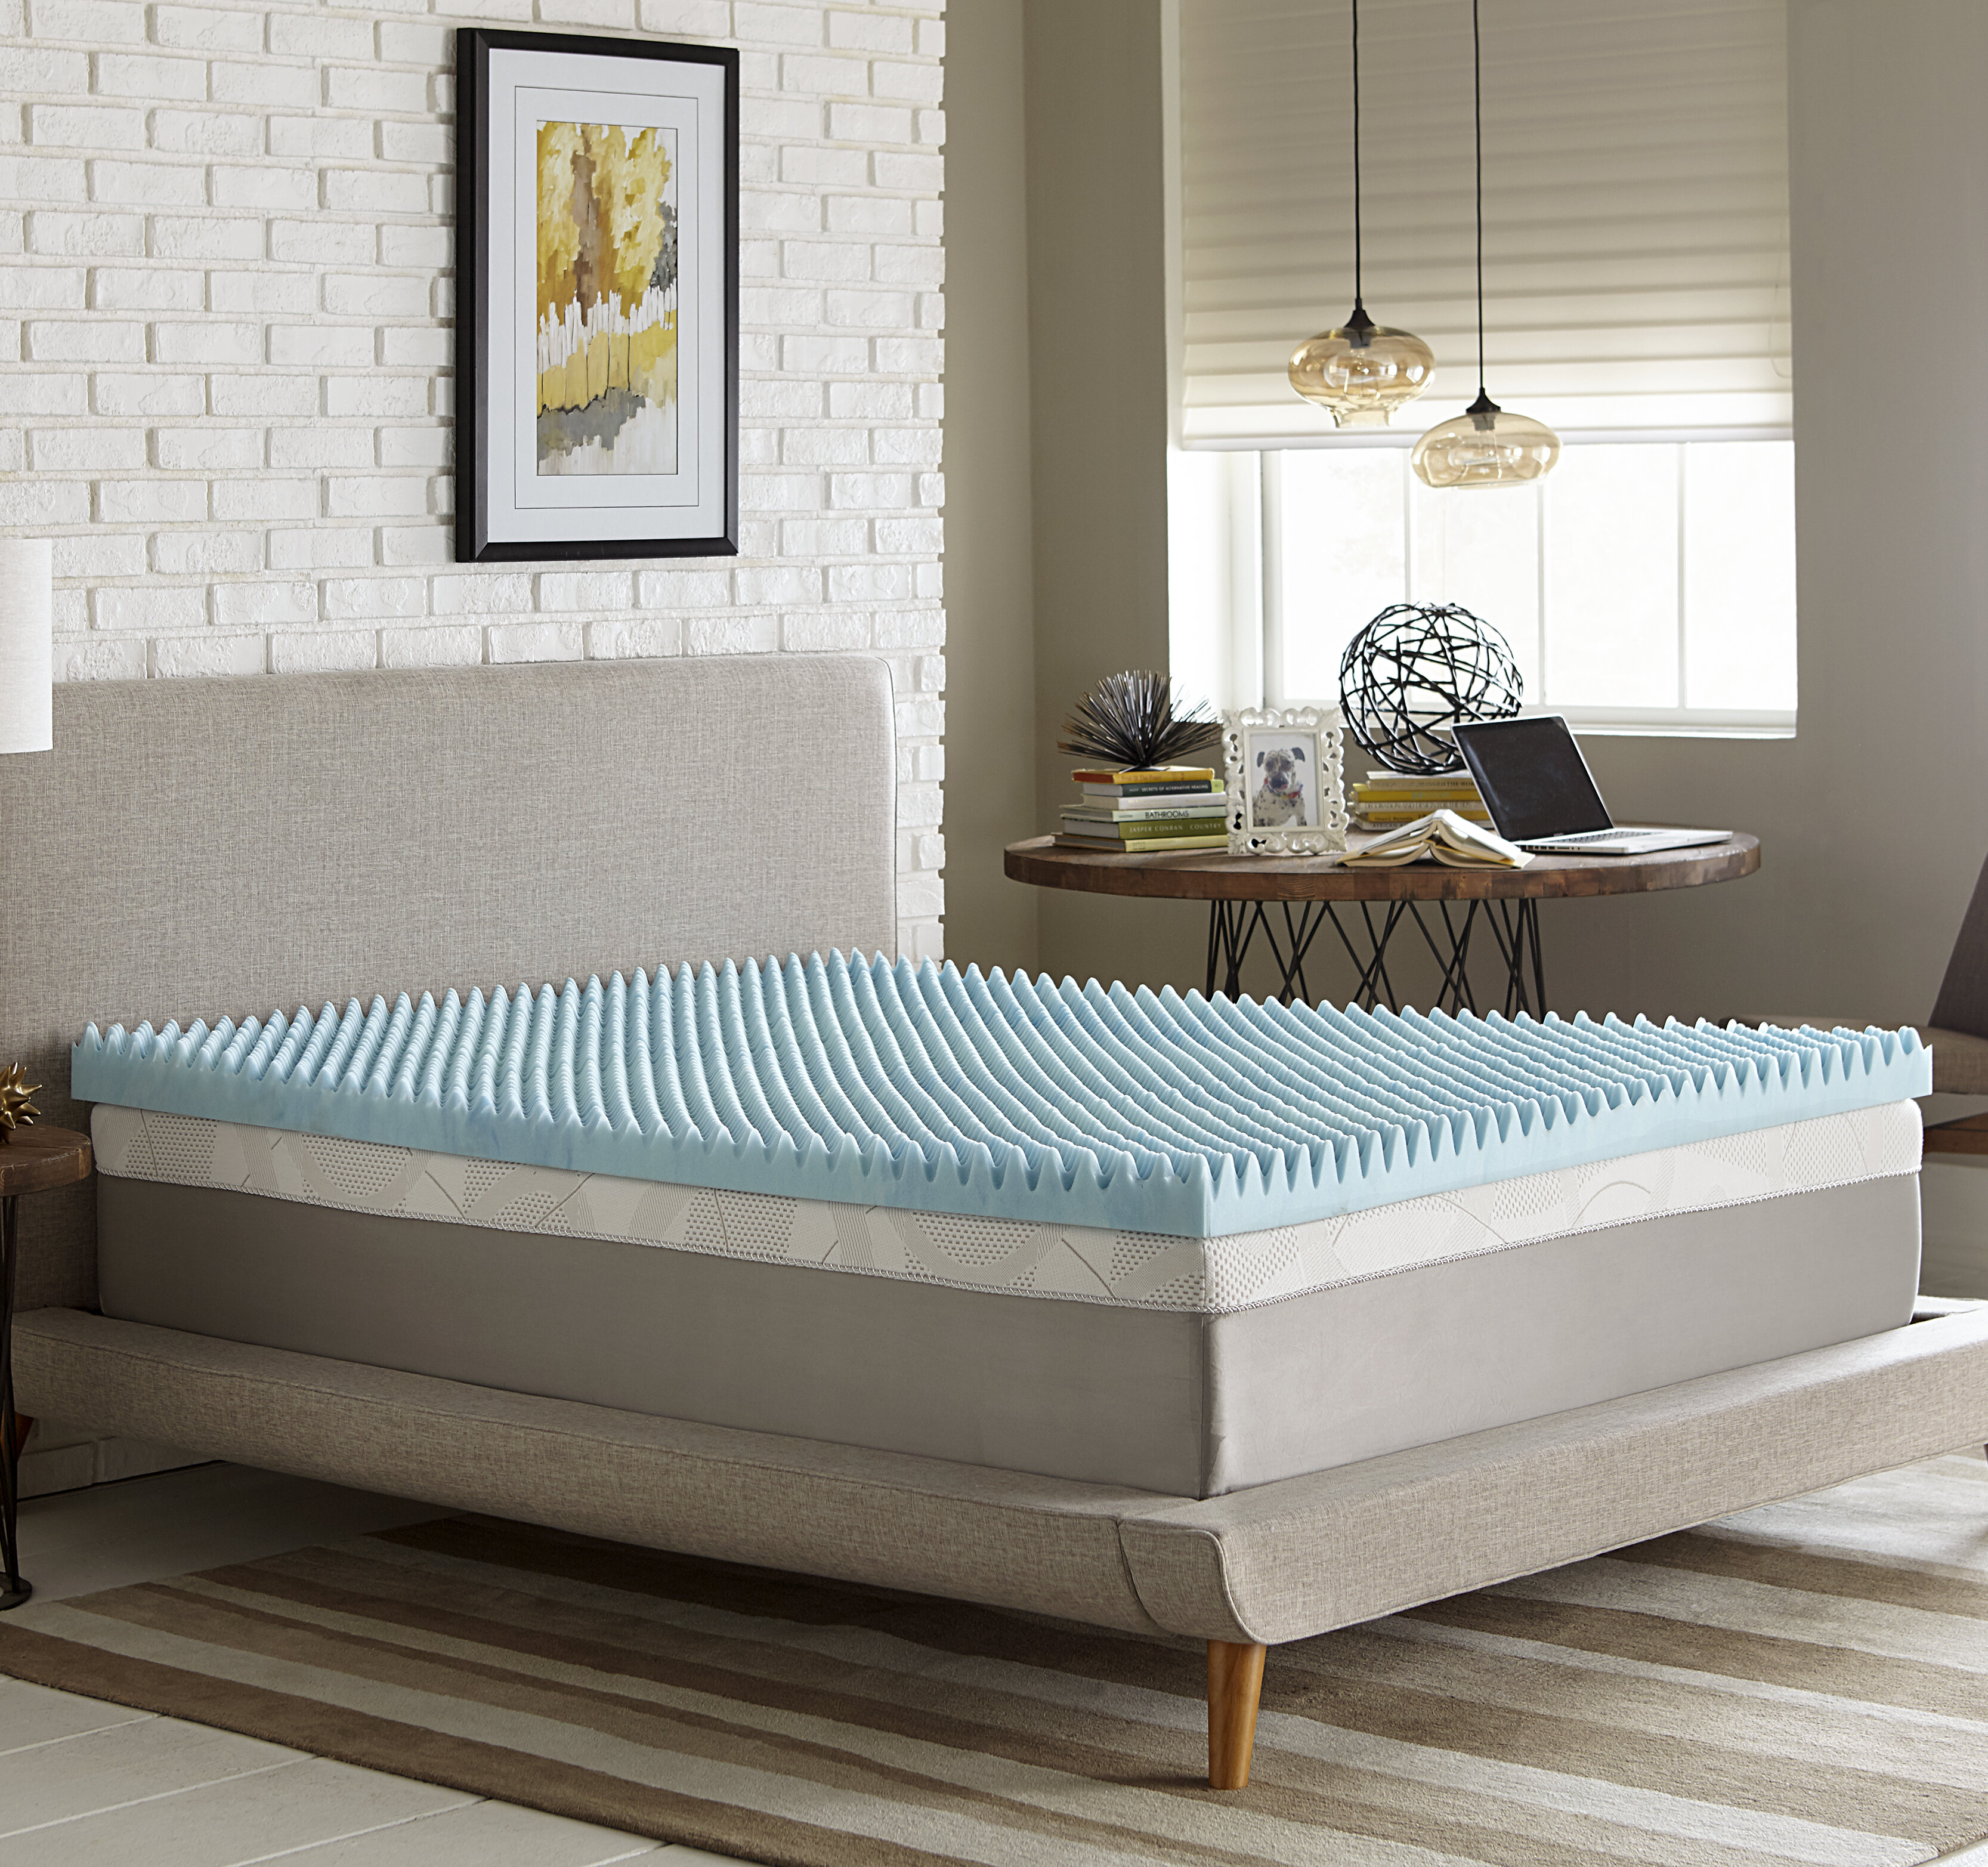 mattress cedar queen amazing tags the shop attractive memory with topper dazzle city tag top toppers store charismatic unusual amusing foam inch cover